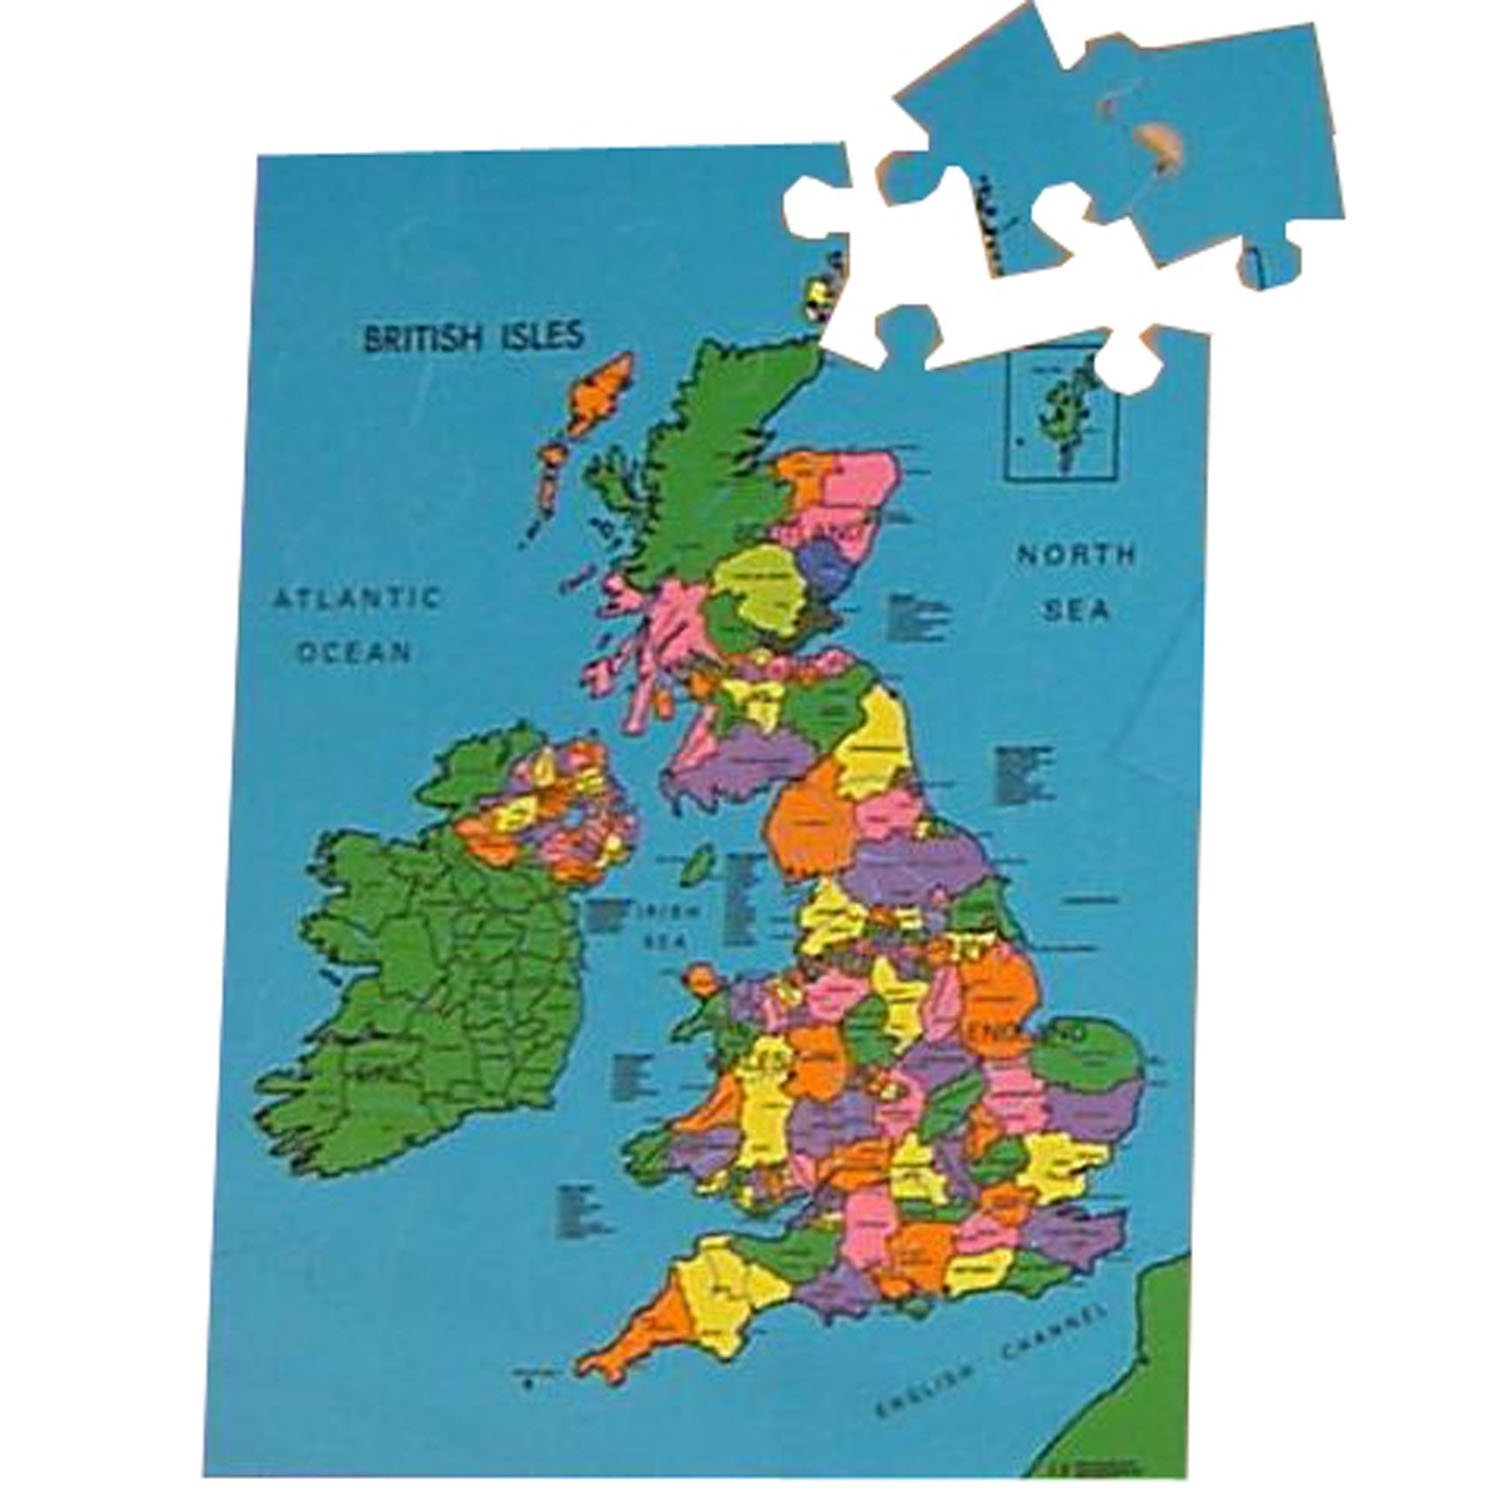 Large British Isles Map Puzzle - A Superb Way To Learn About Our ...